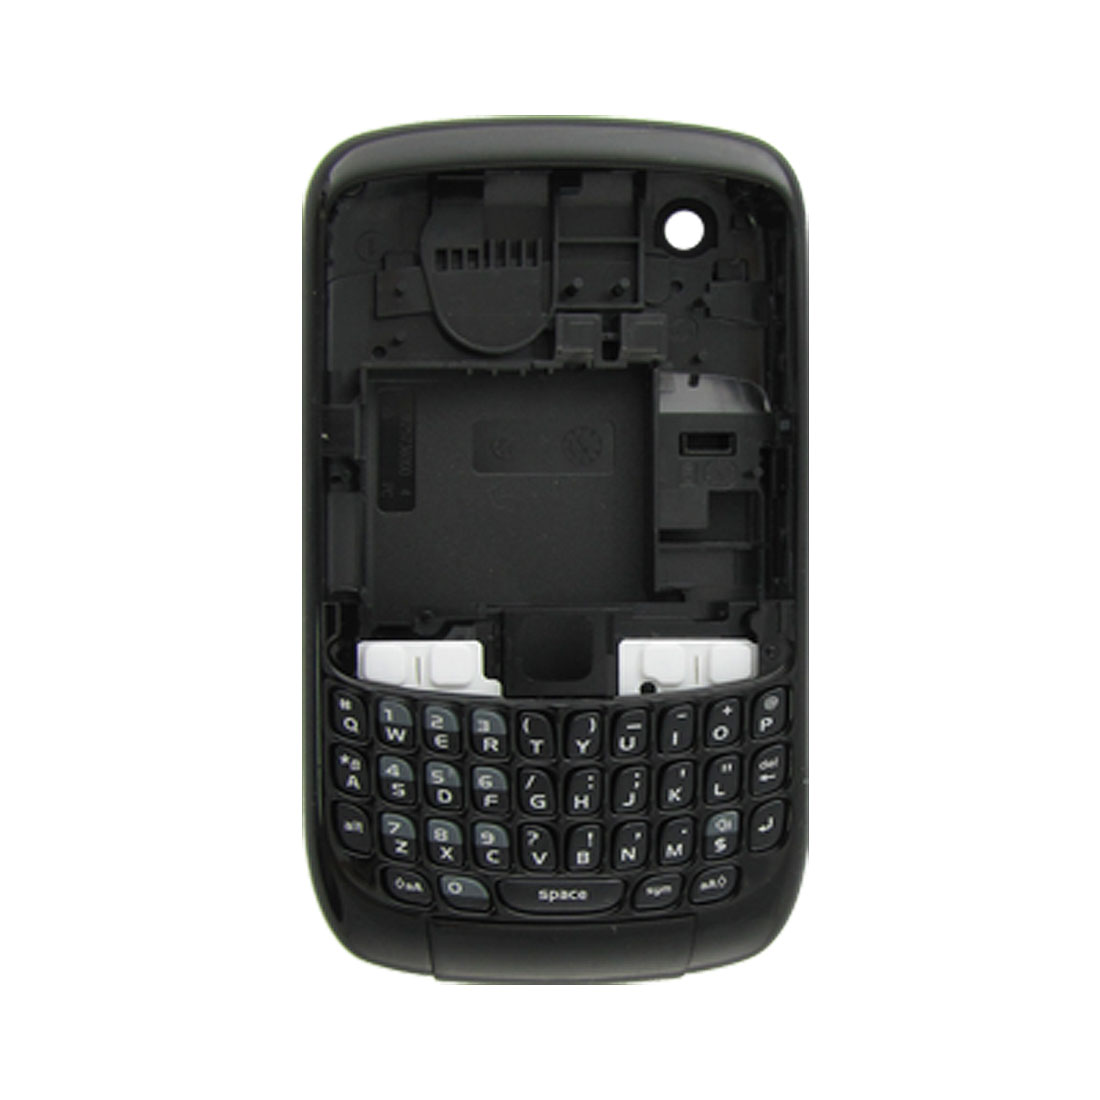 Clear Anti Glare Case Shell for Blackberry 8900 Gray